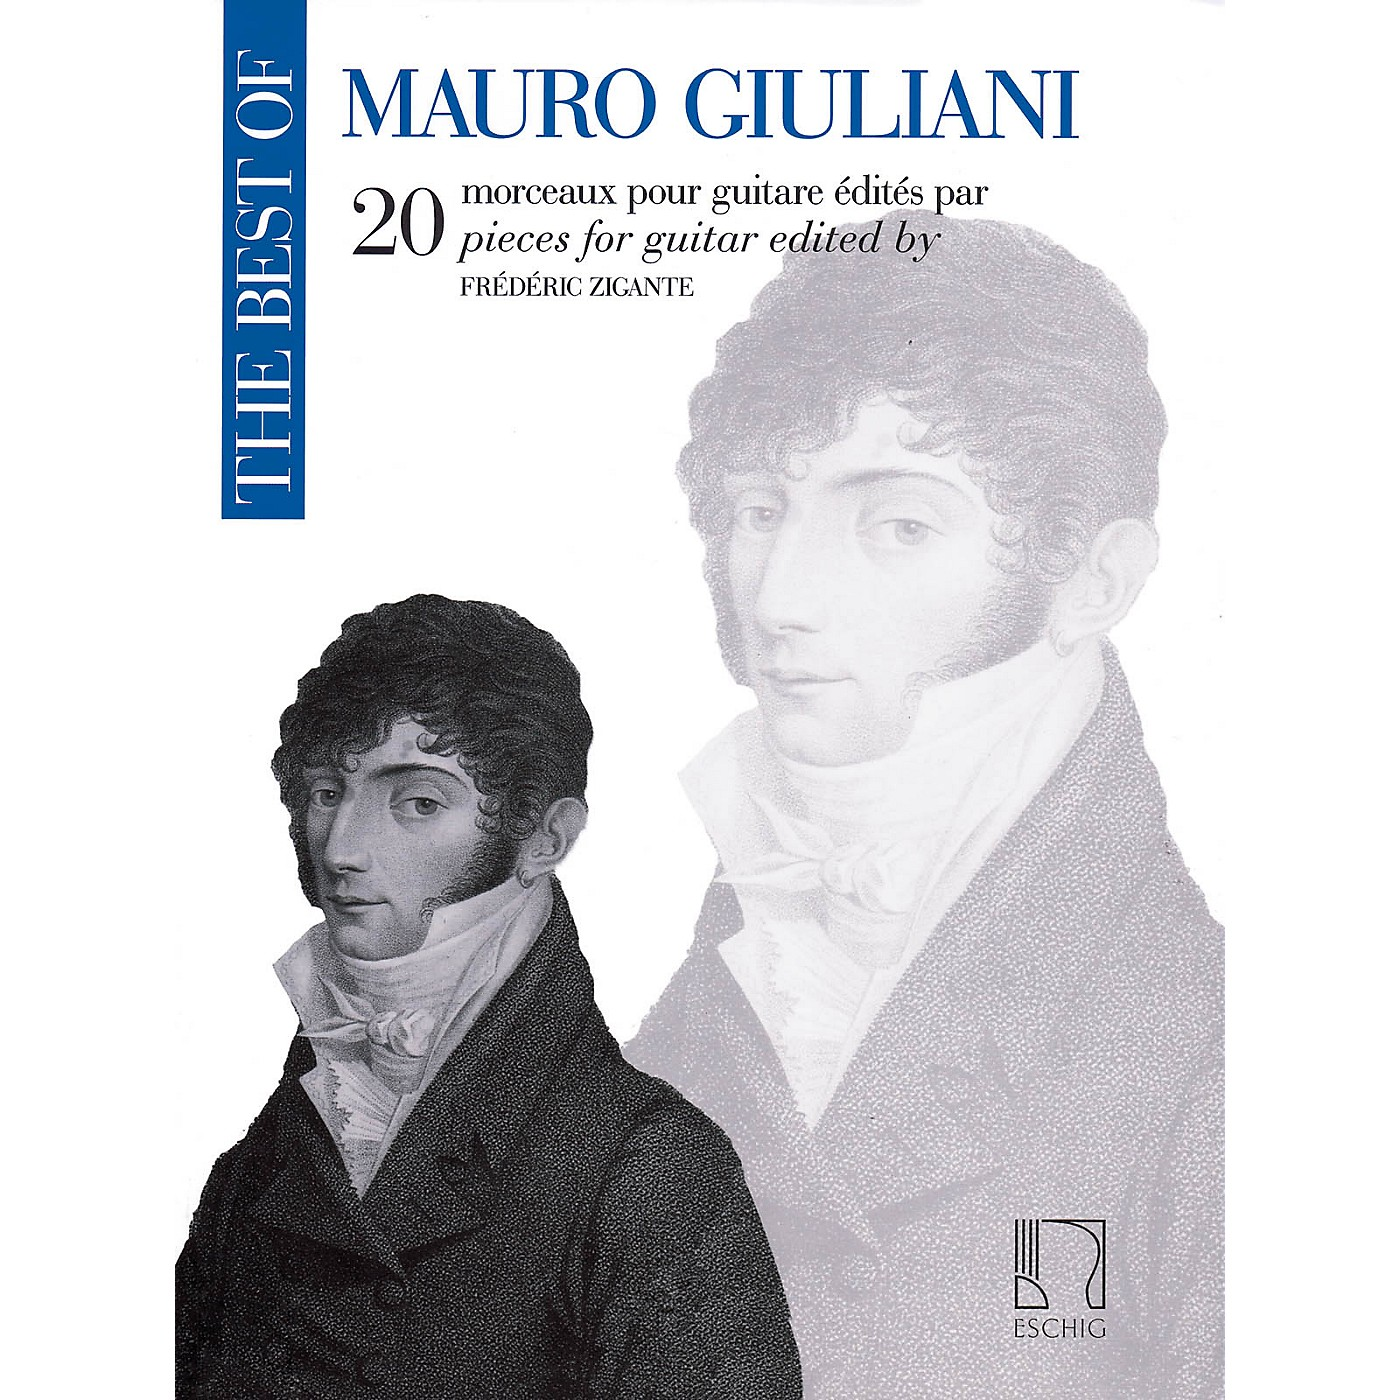 Max Eschig The Best of Mauro Giuliani Editions Durand Composed by Mauro Giuliani Edited by Frederic Zigante thumbnail